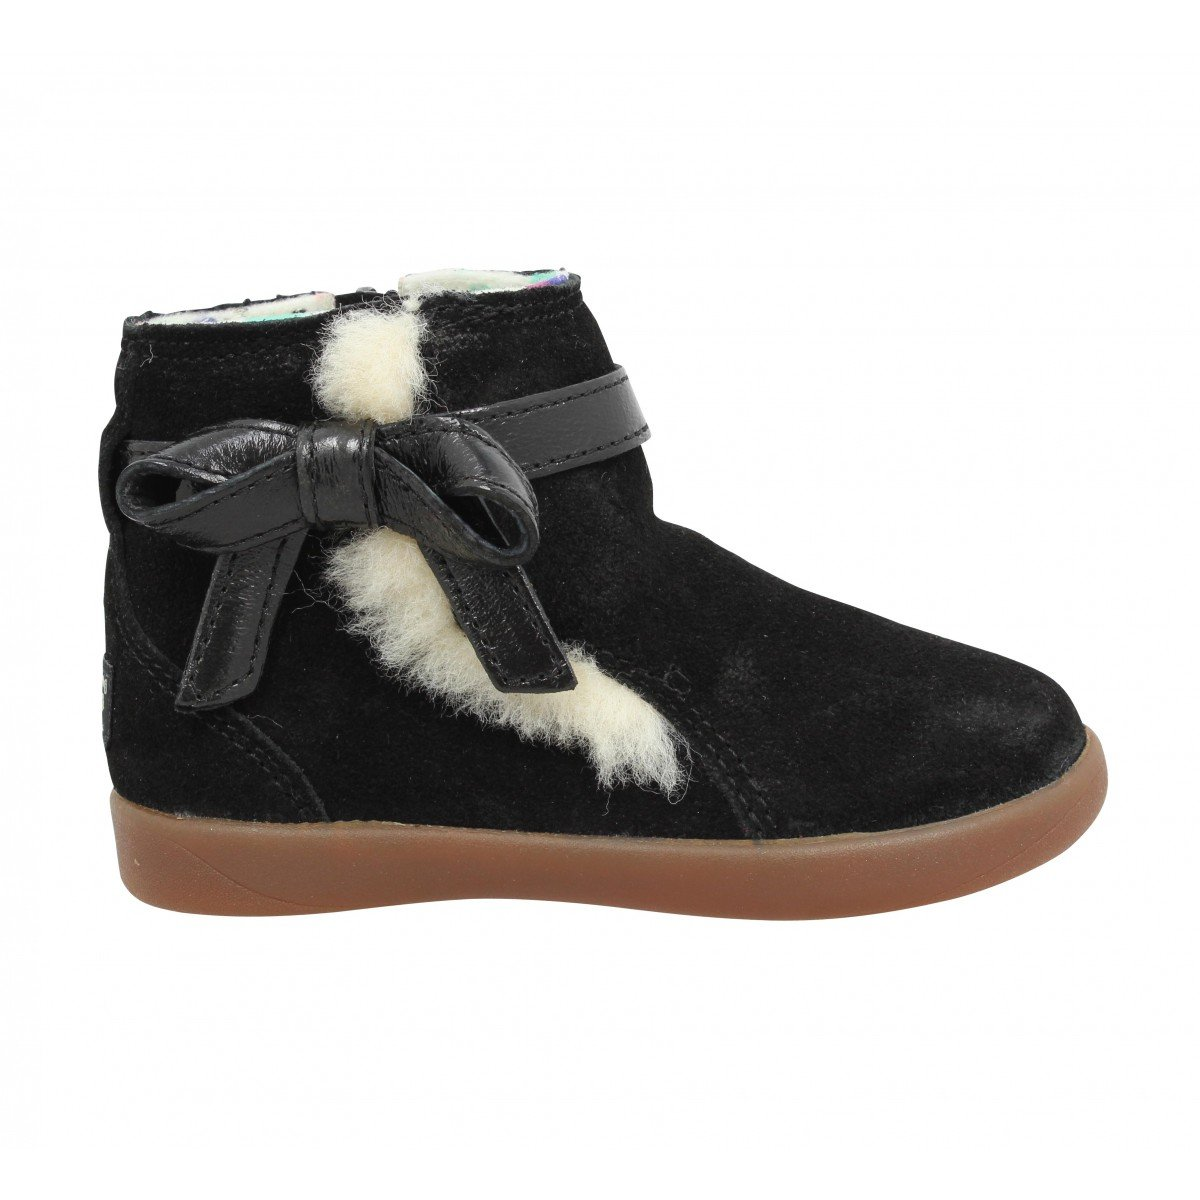 f50165daee3 UGG Australia Boots Libbie, Black, 25: Amazon.co.uk: Shoes & Bags